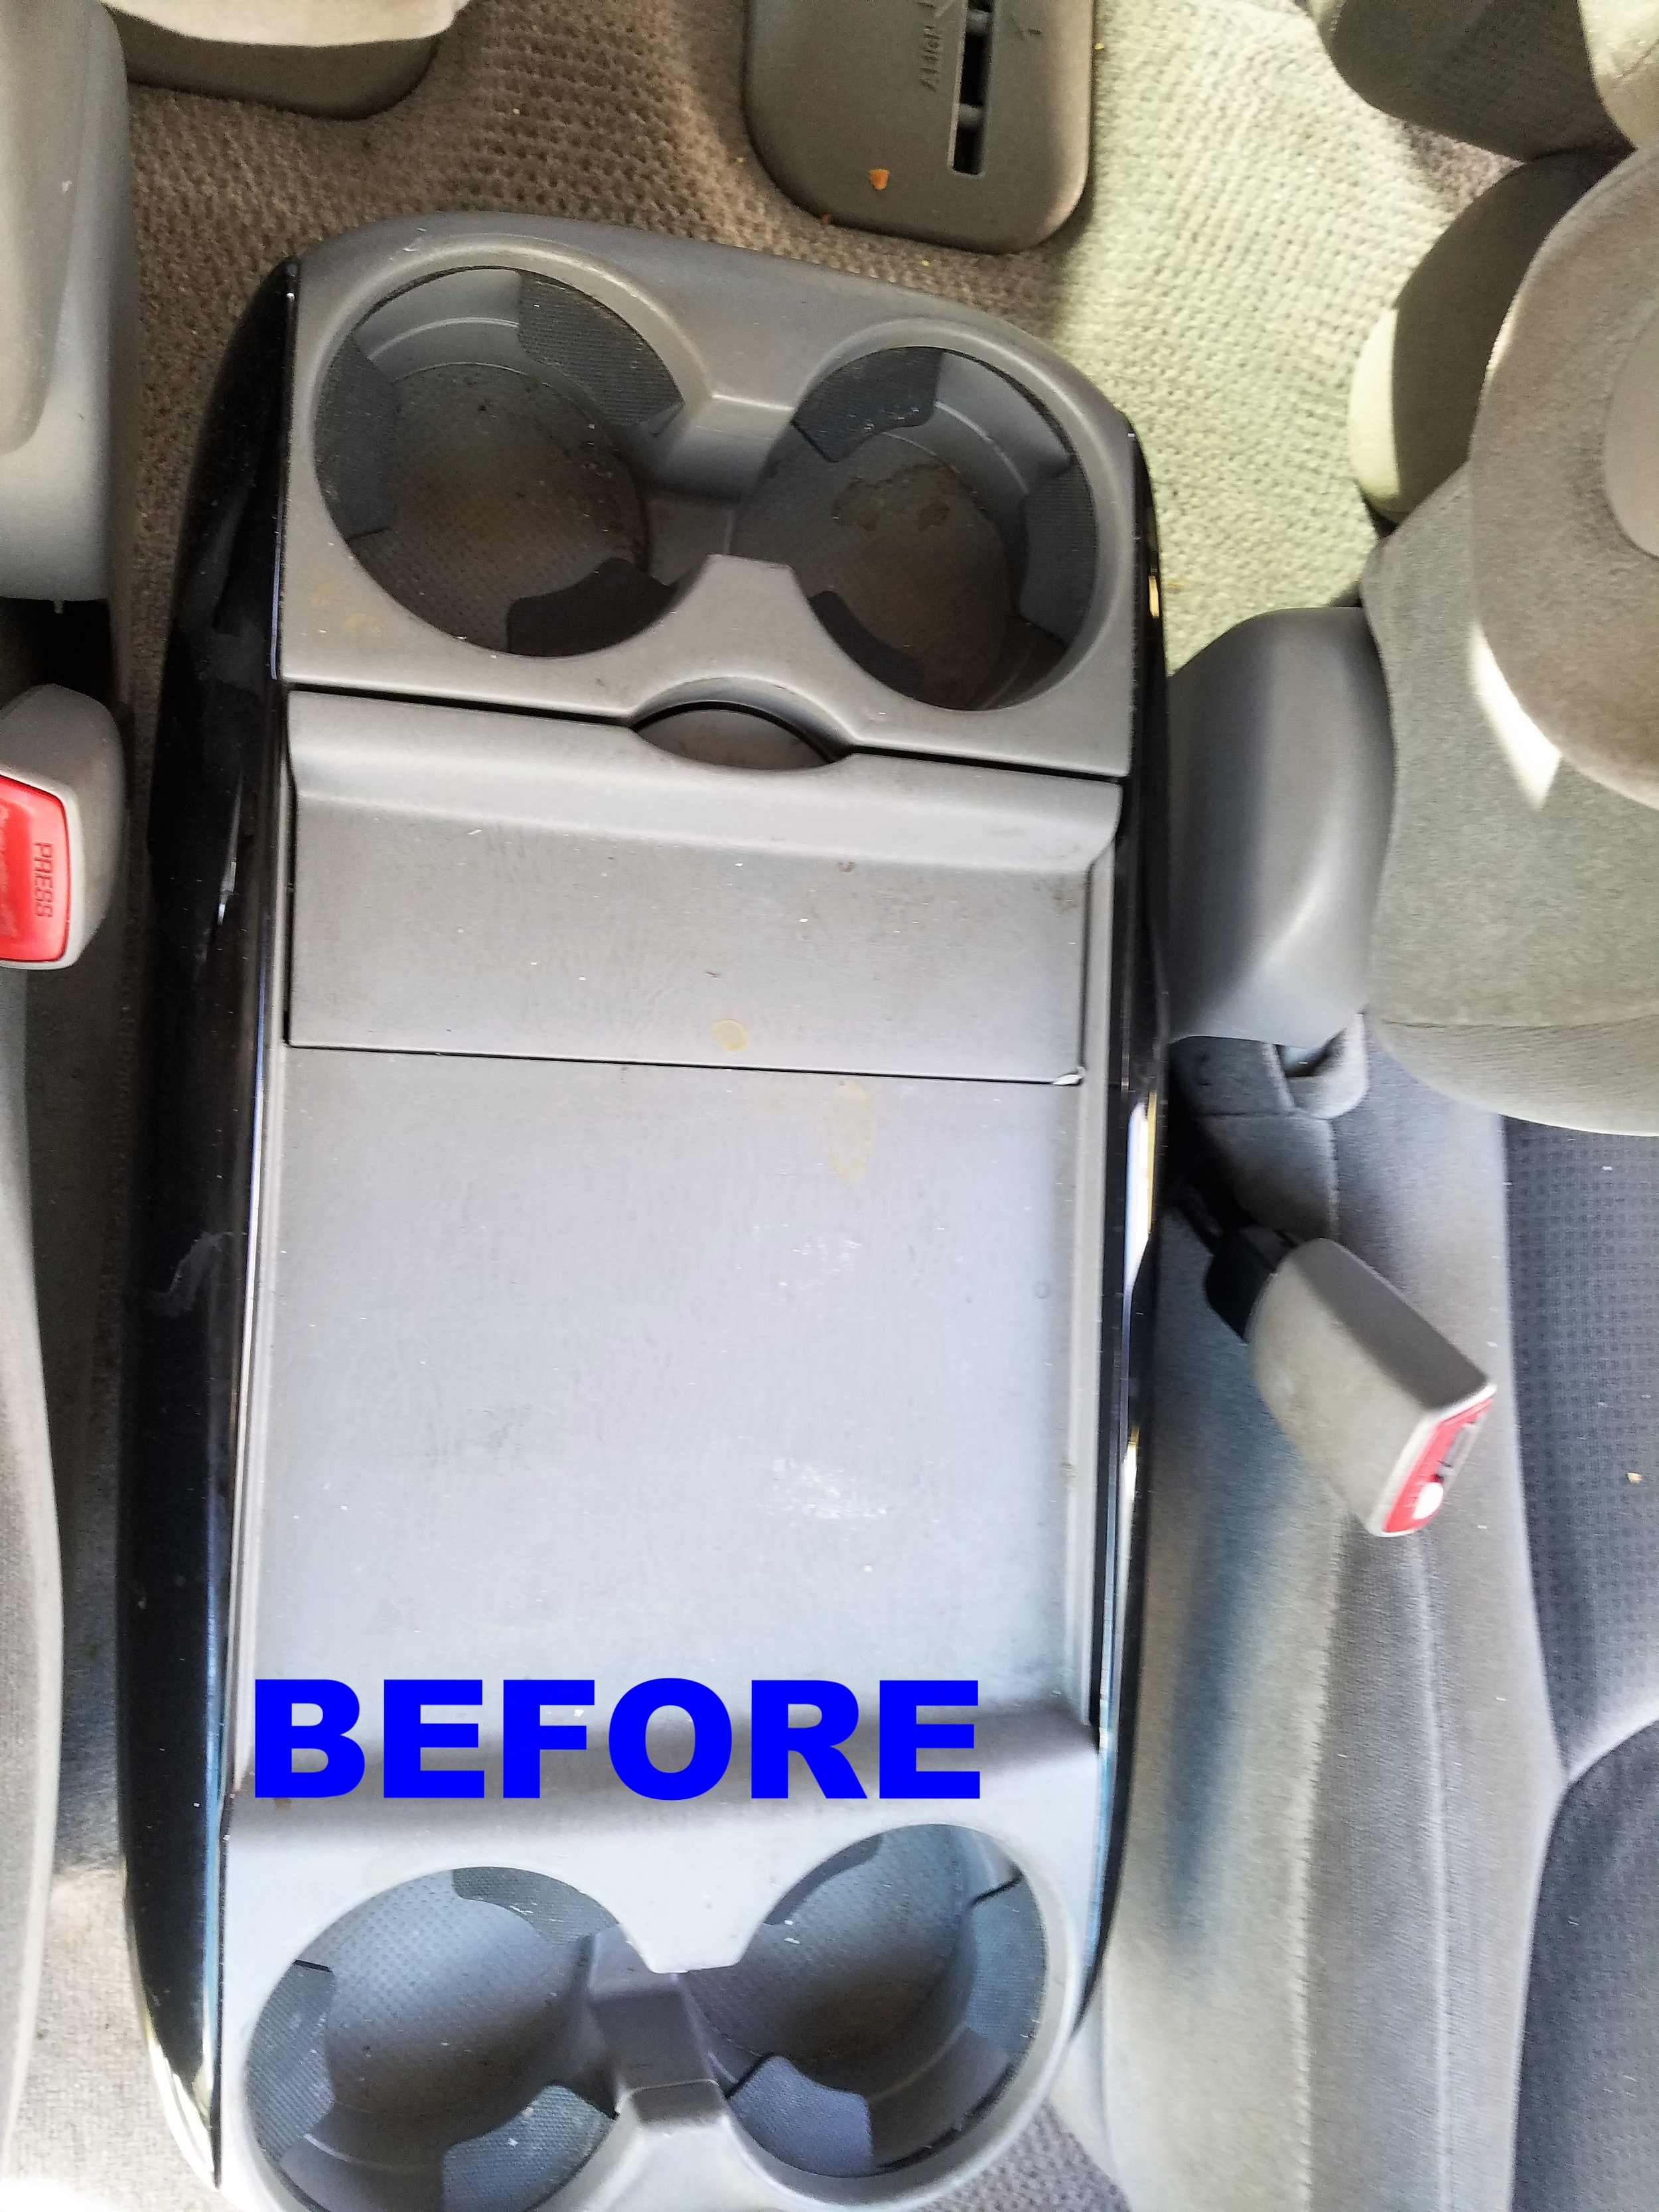 Looking for a Car Detailer?